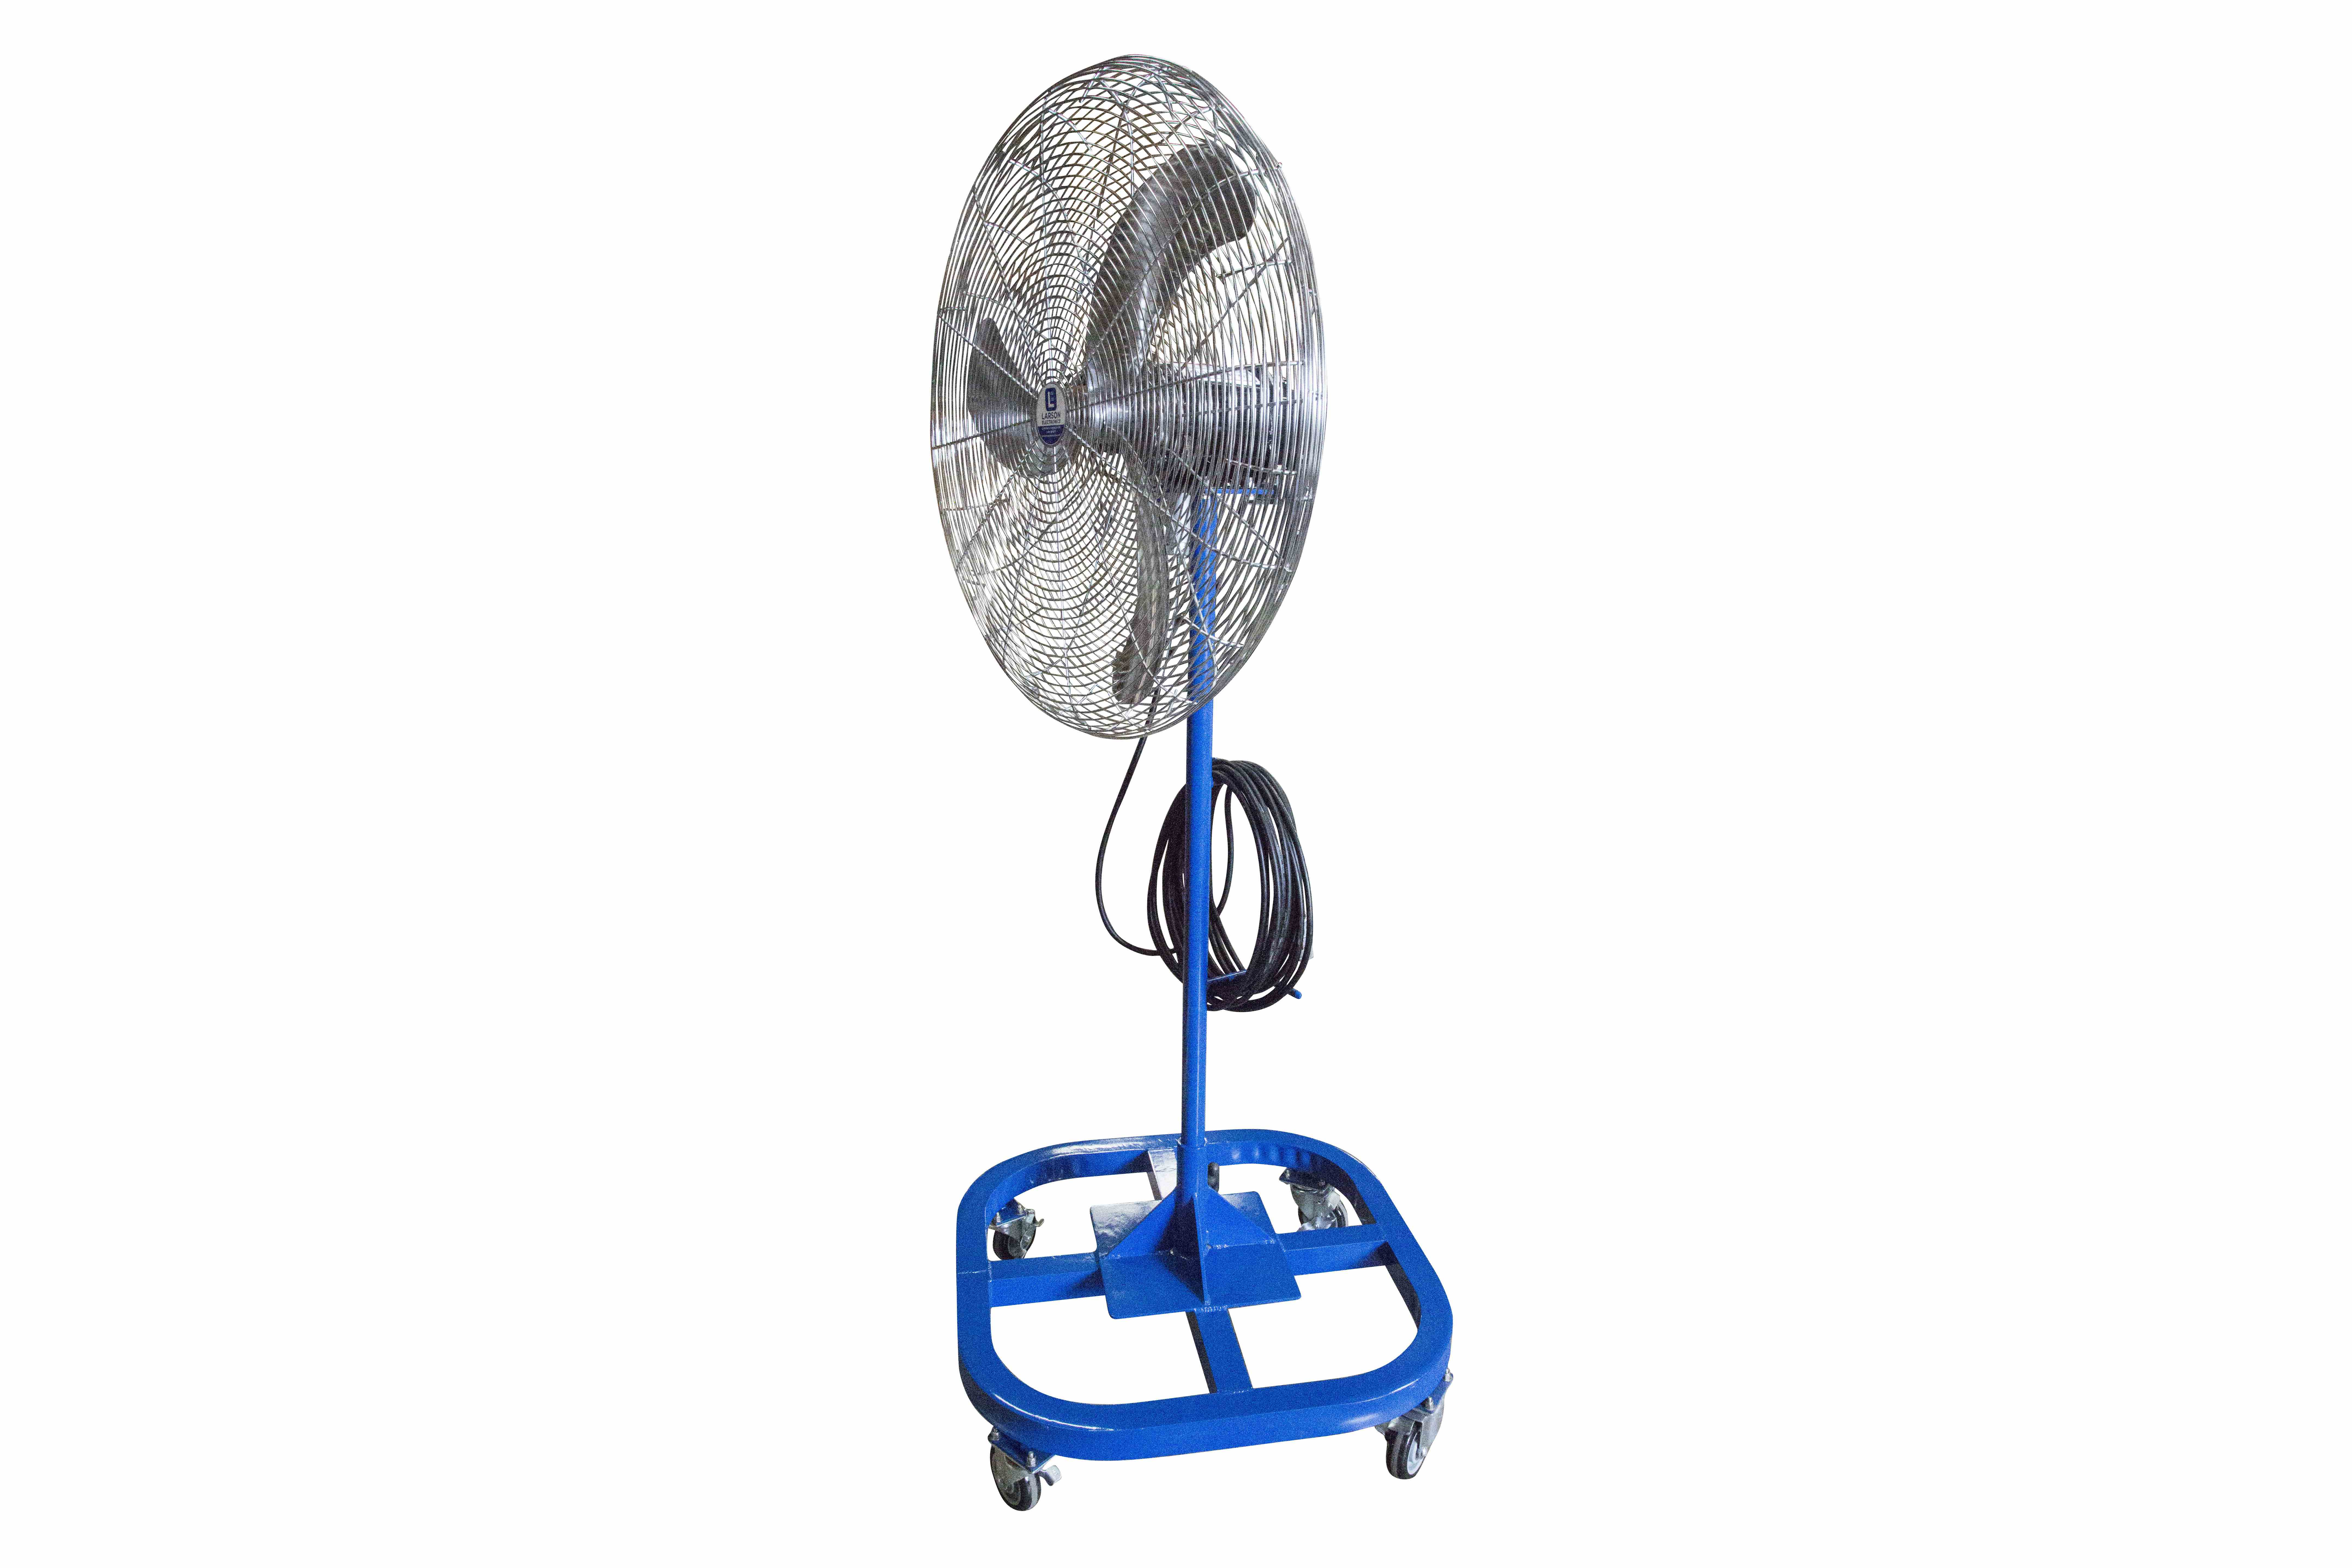 30 Electric Explosion Proof Fan On 4 Stand